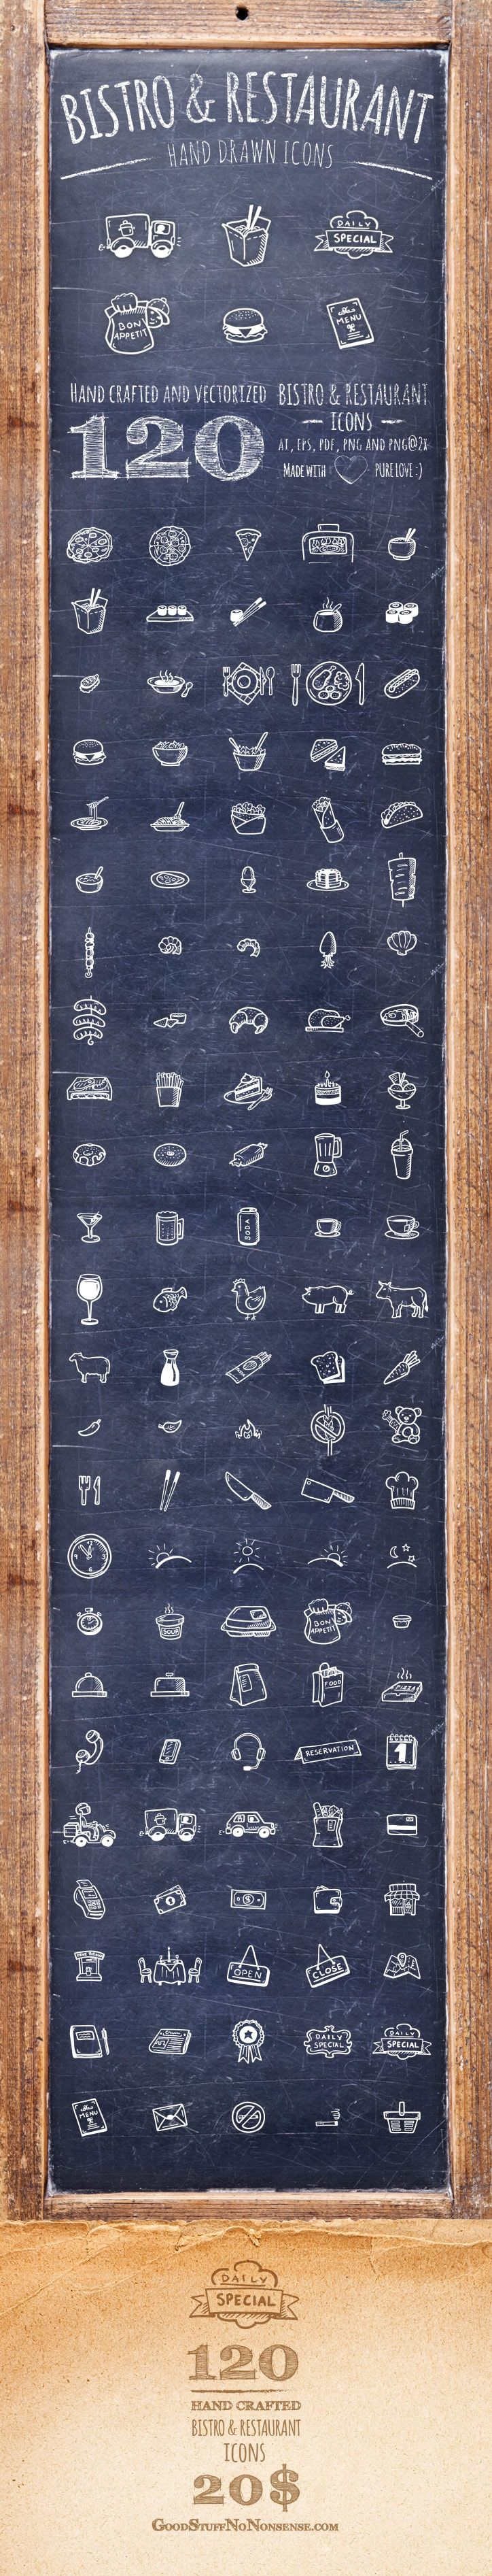 Bistro & Restaurant Icons - Good Stuff No Nonsense